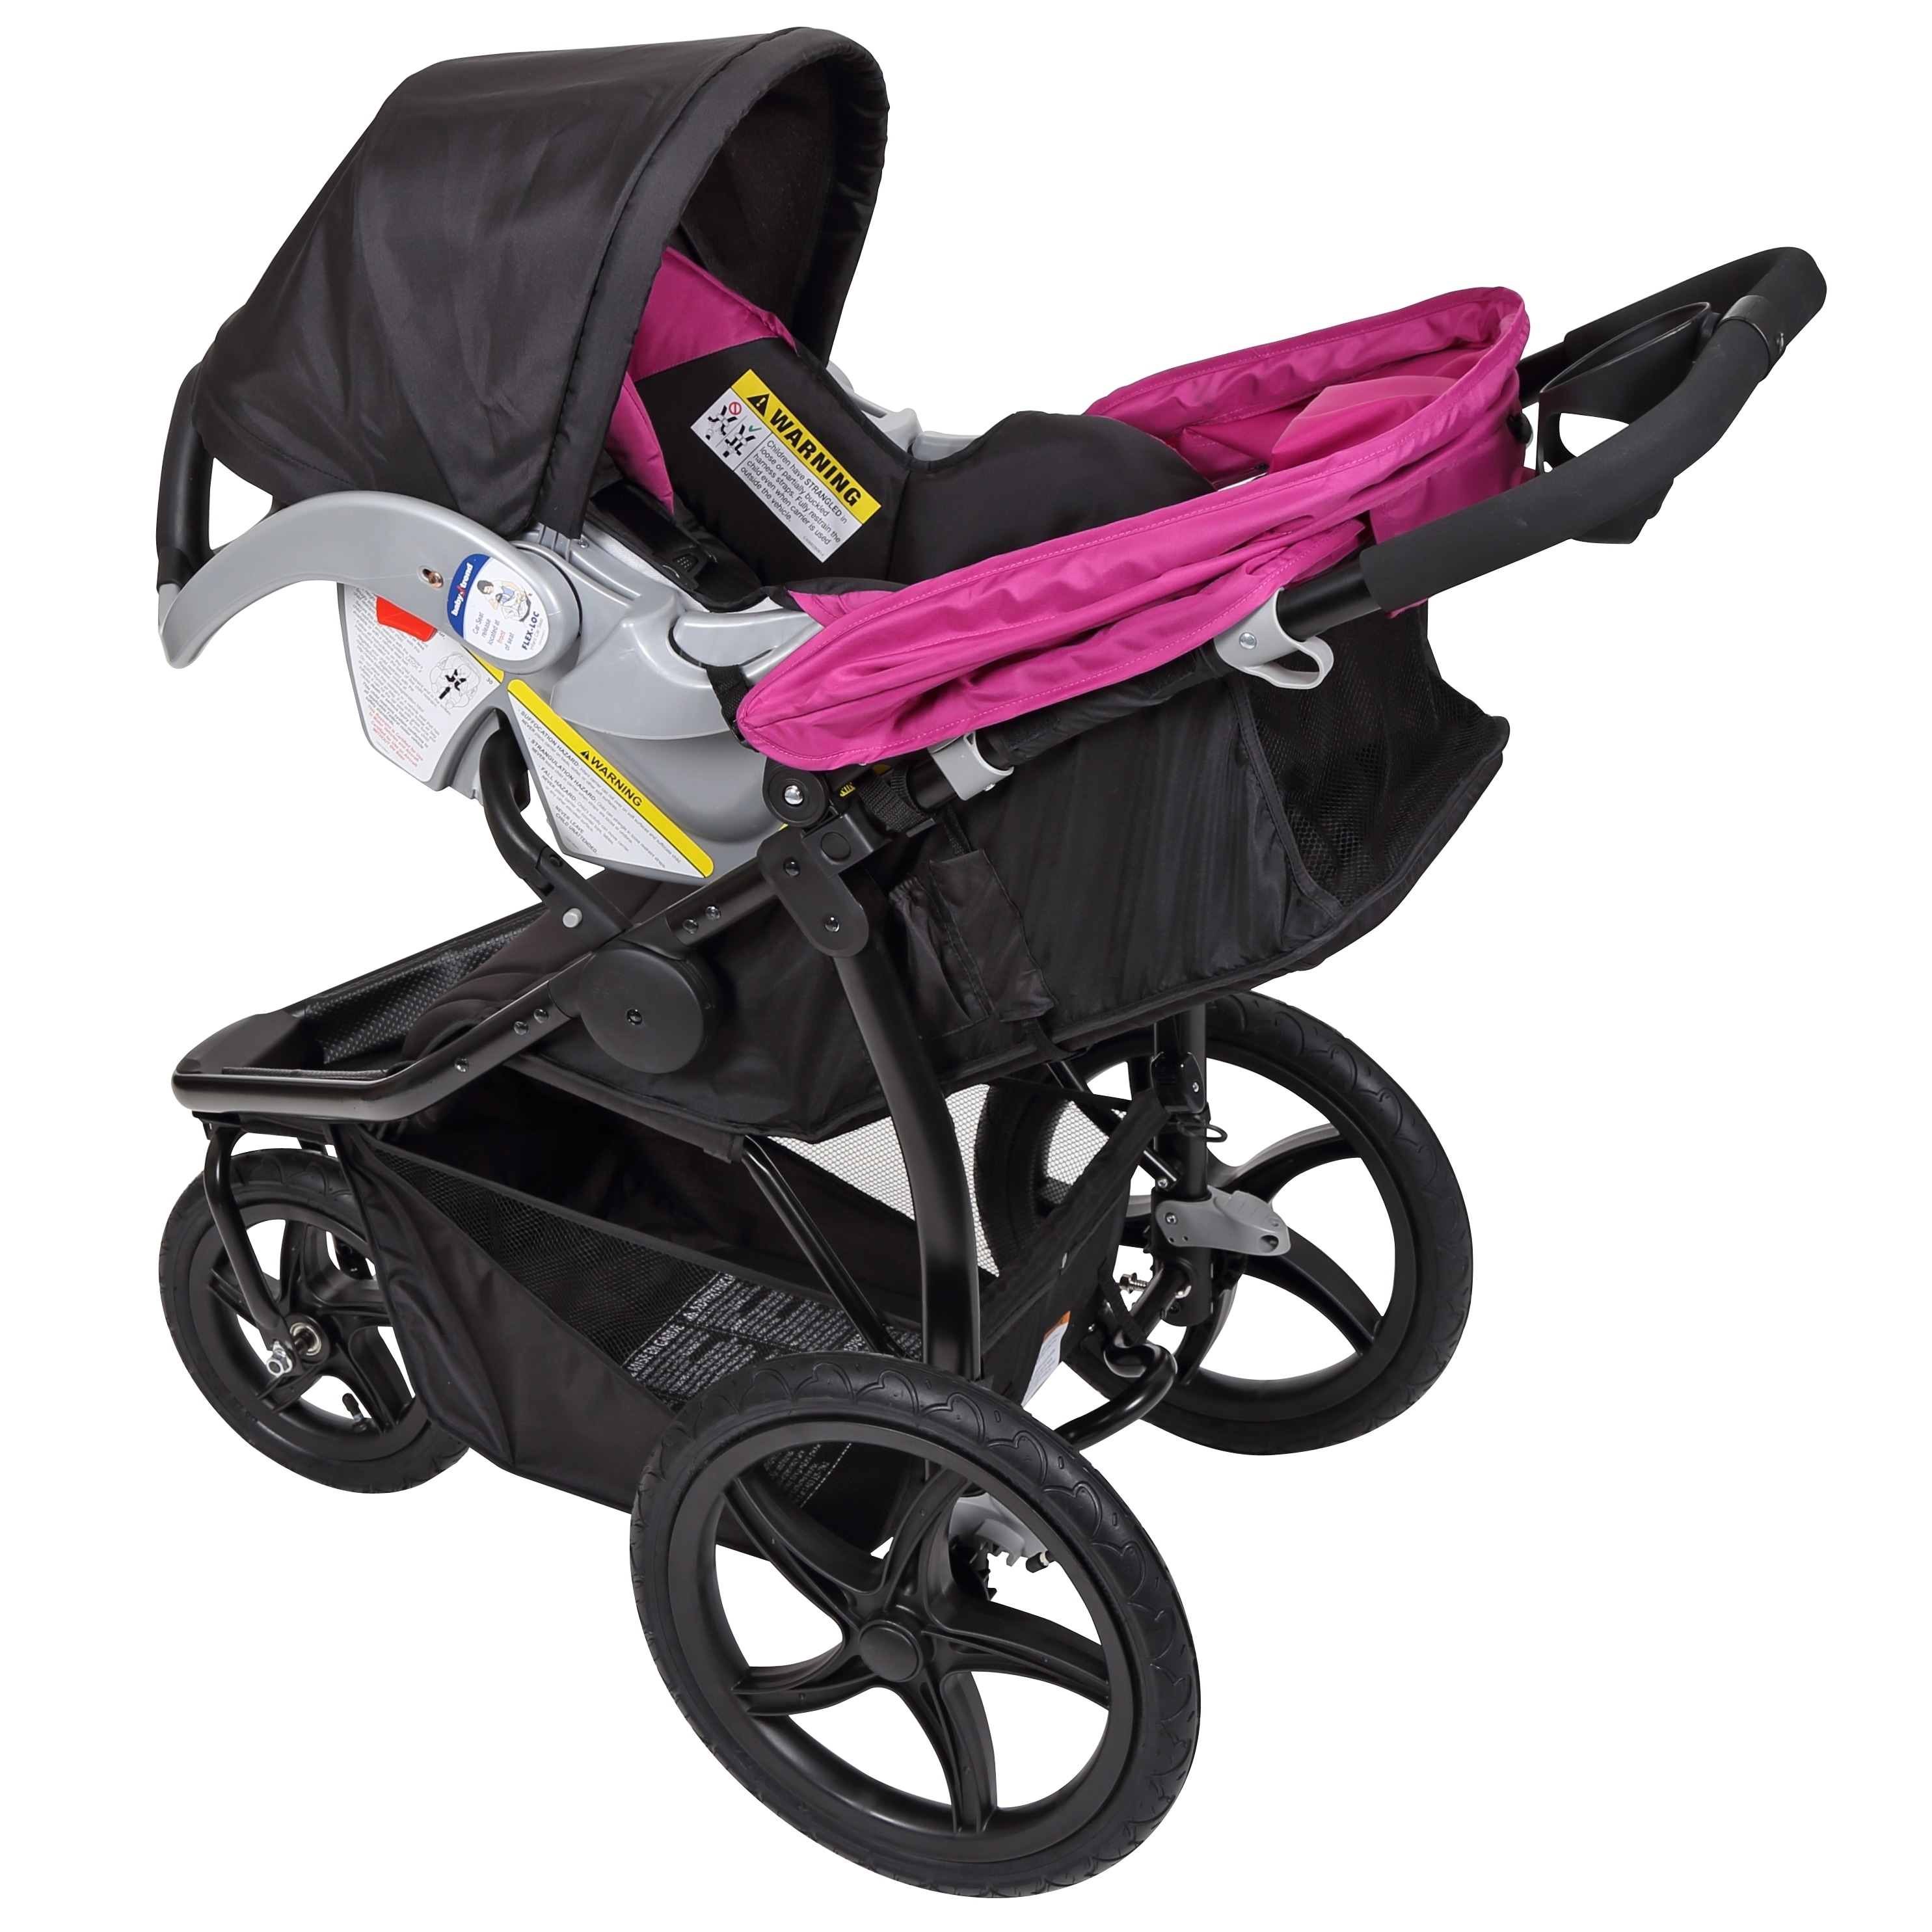 Baby Trend Expedition Jogger Travel System Car Seat Base